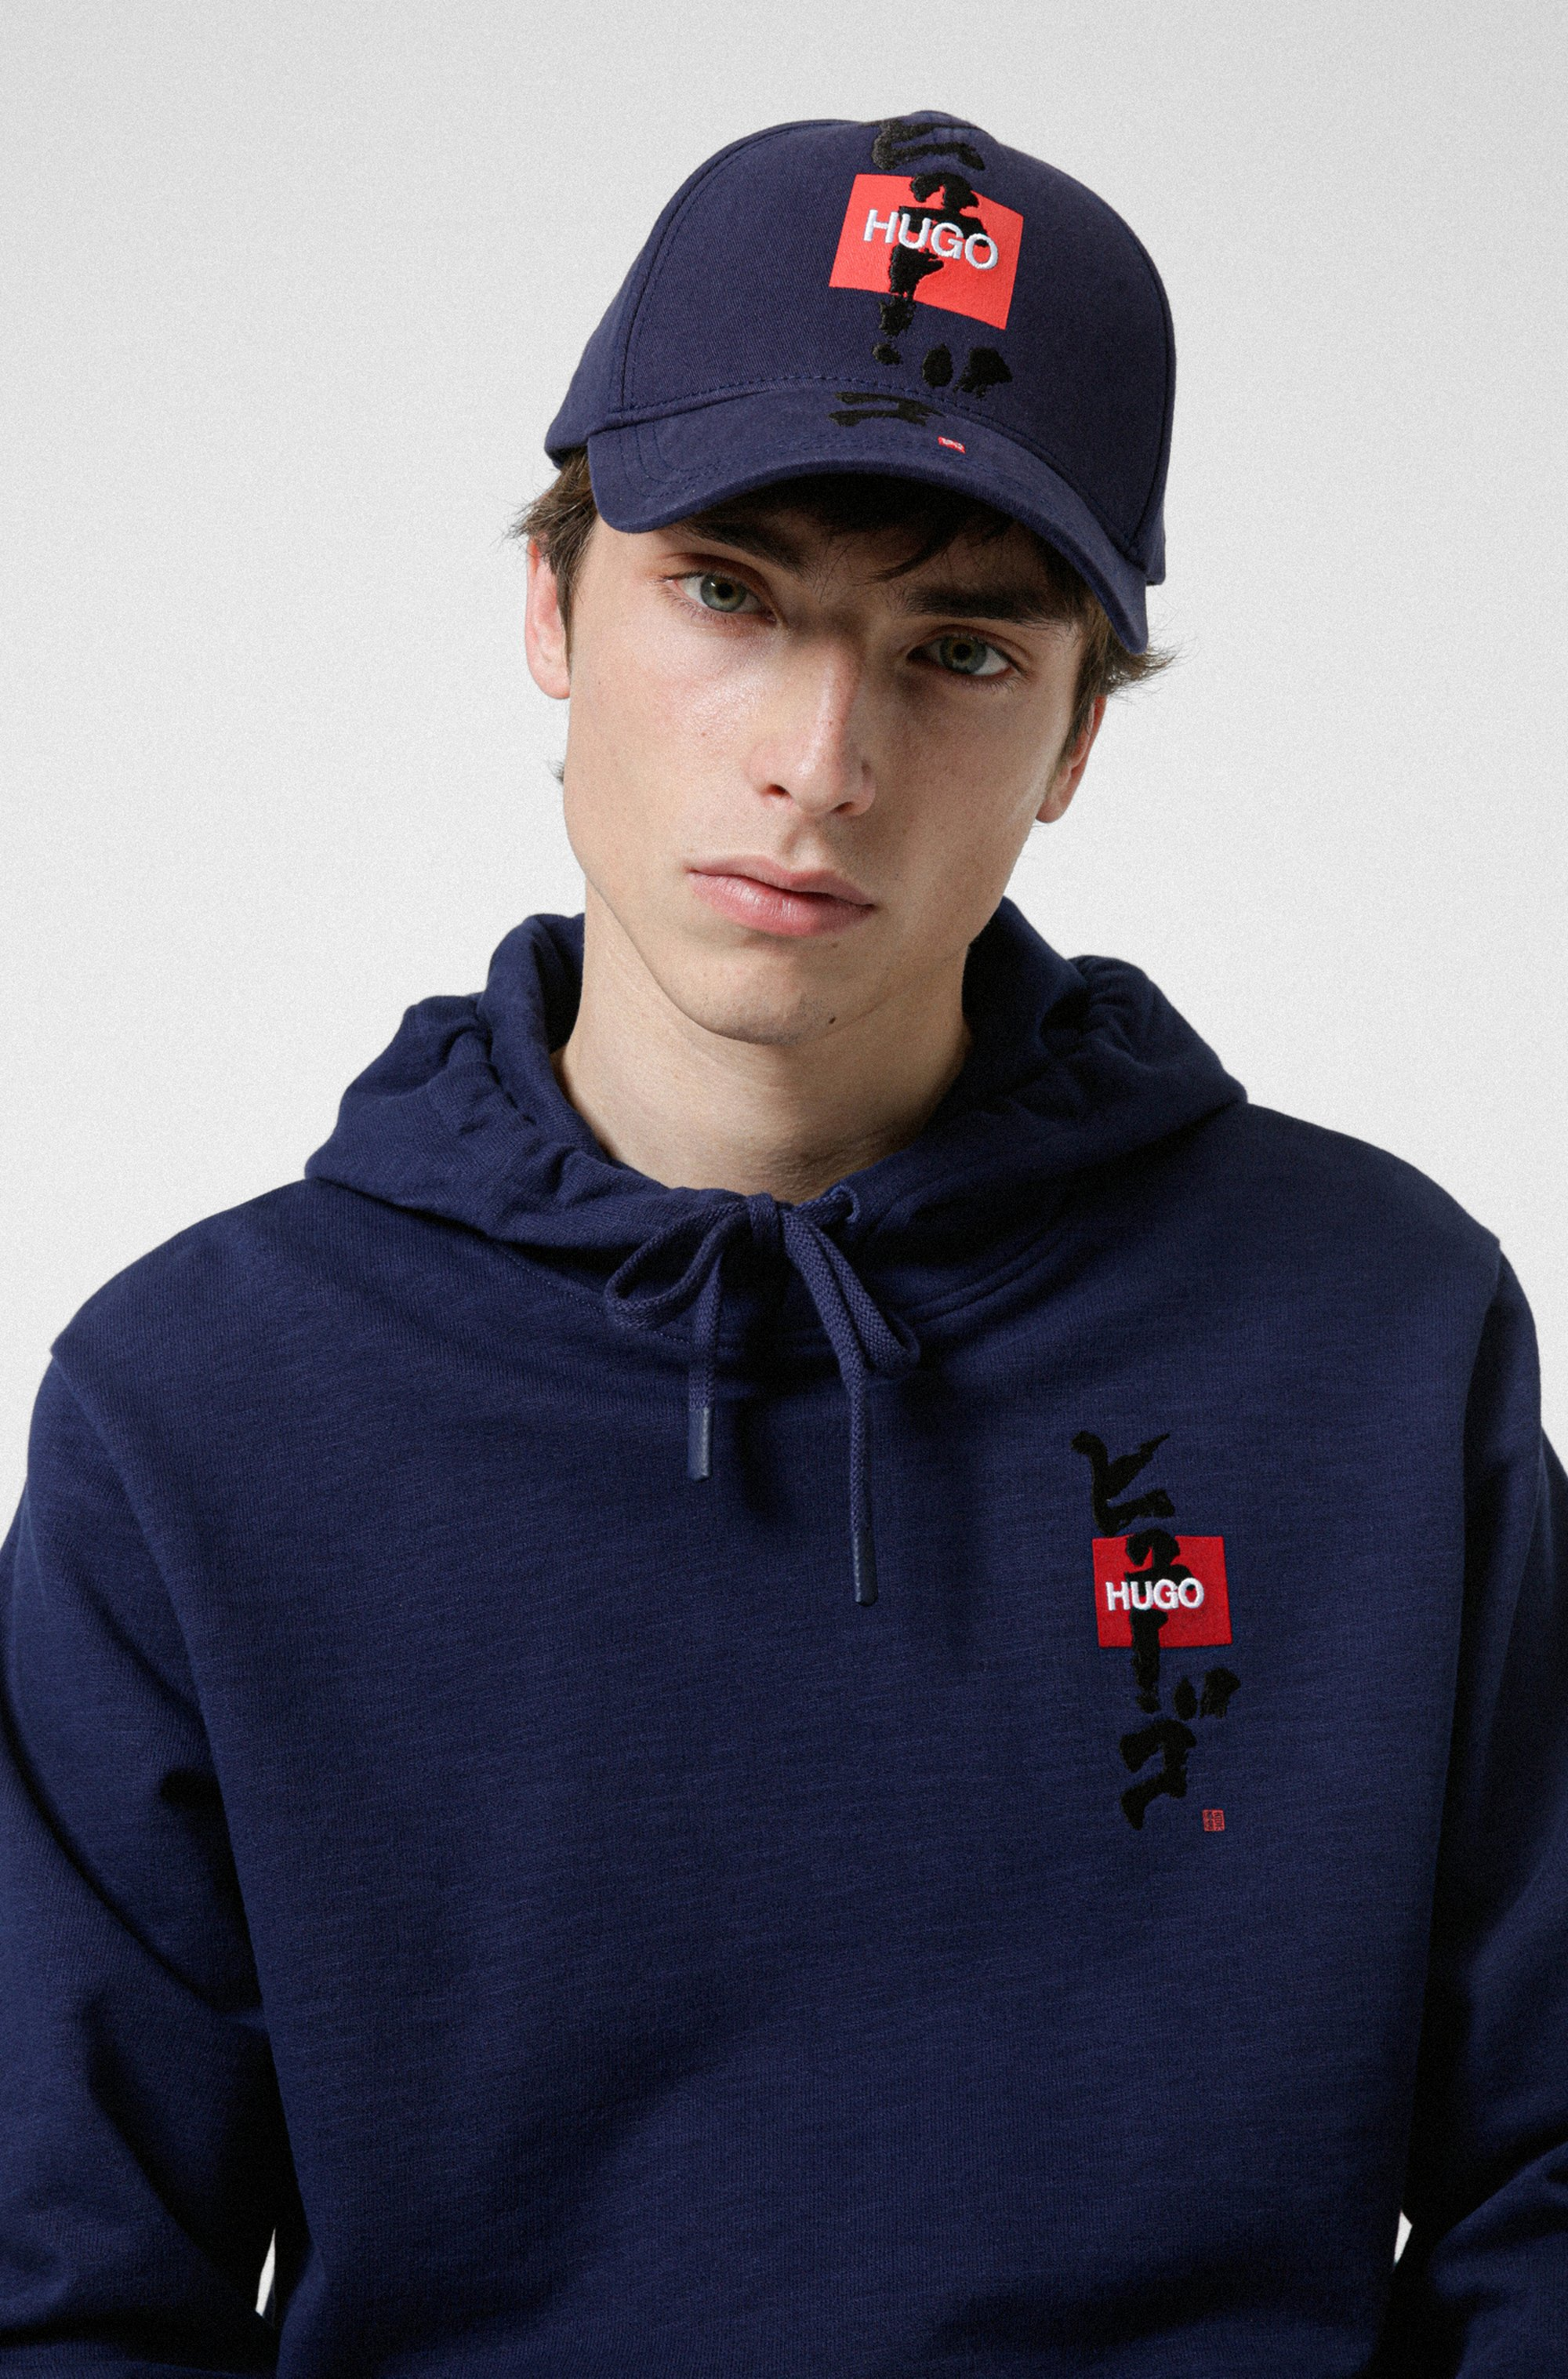 Cotton-twill cap with logo and calligraphy artwork